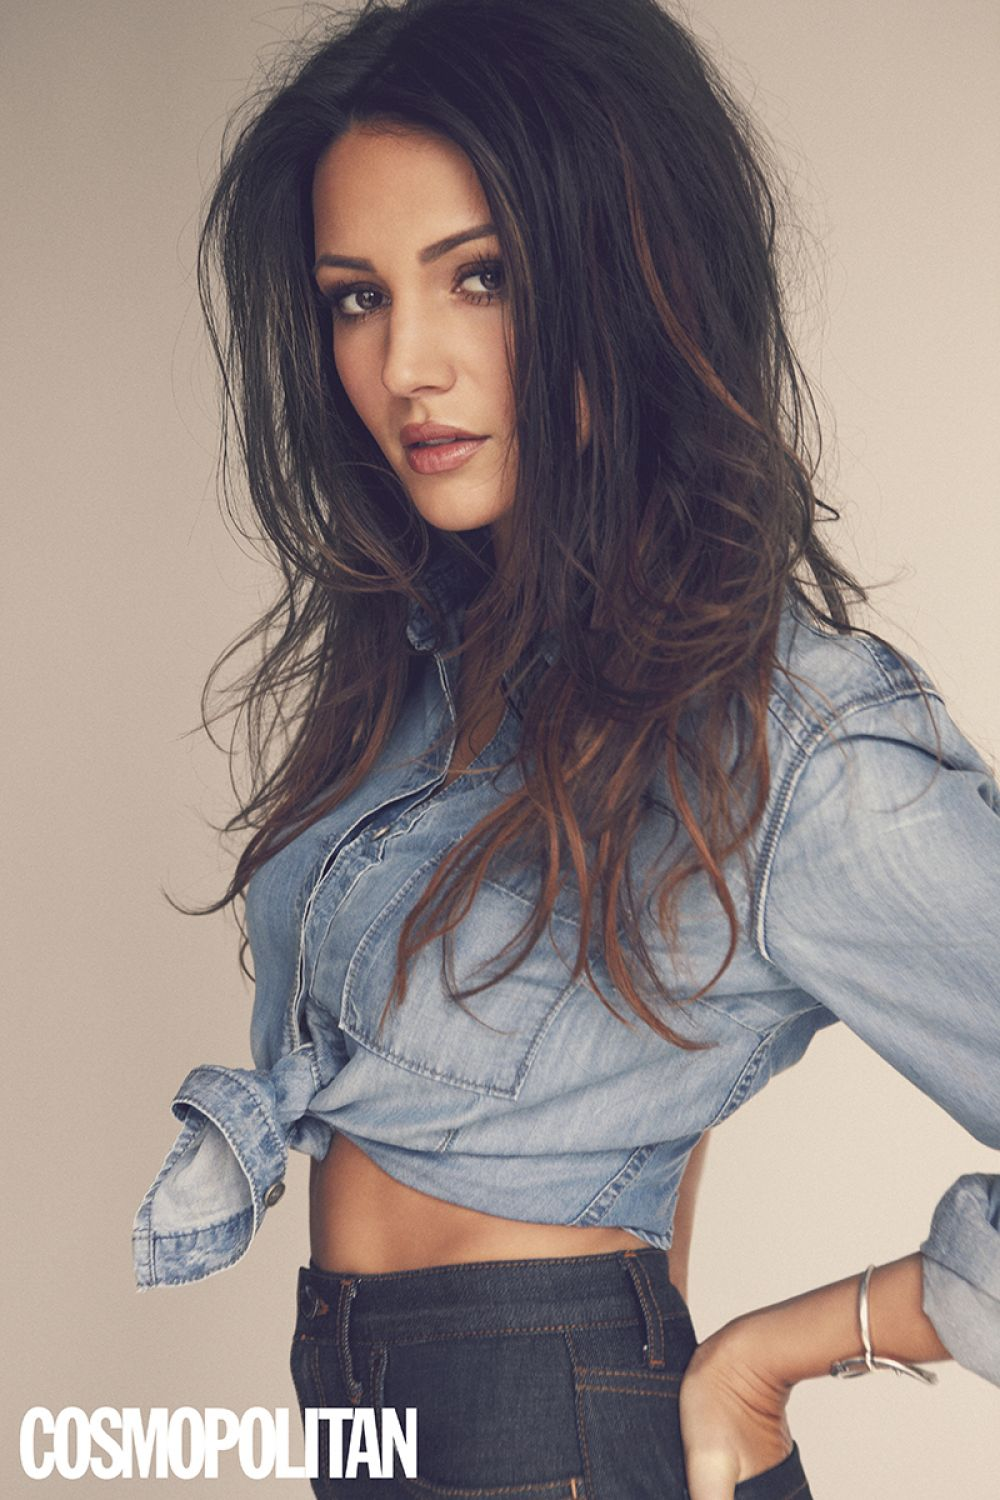 MICHELLE KEEGAN in Cosmopolitan Magazine, UK May 2015 Issue